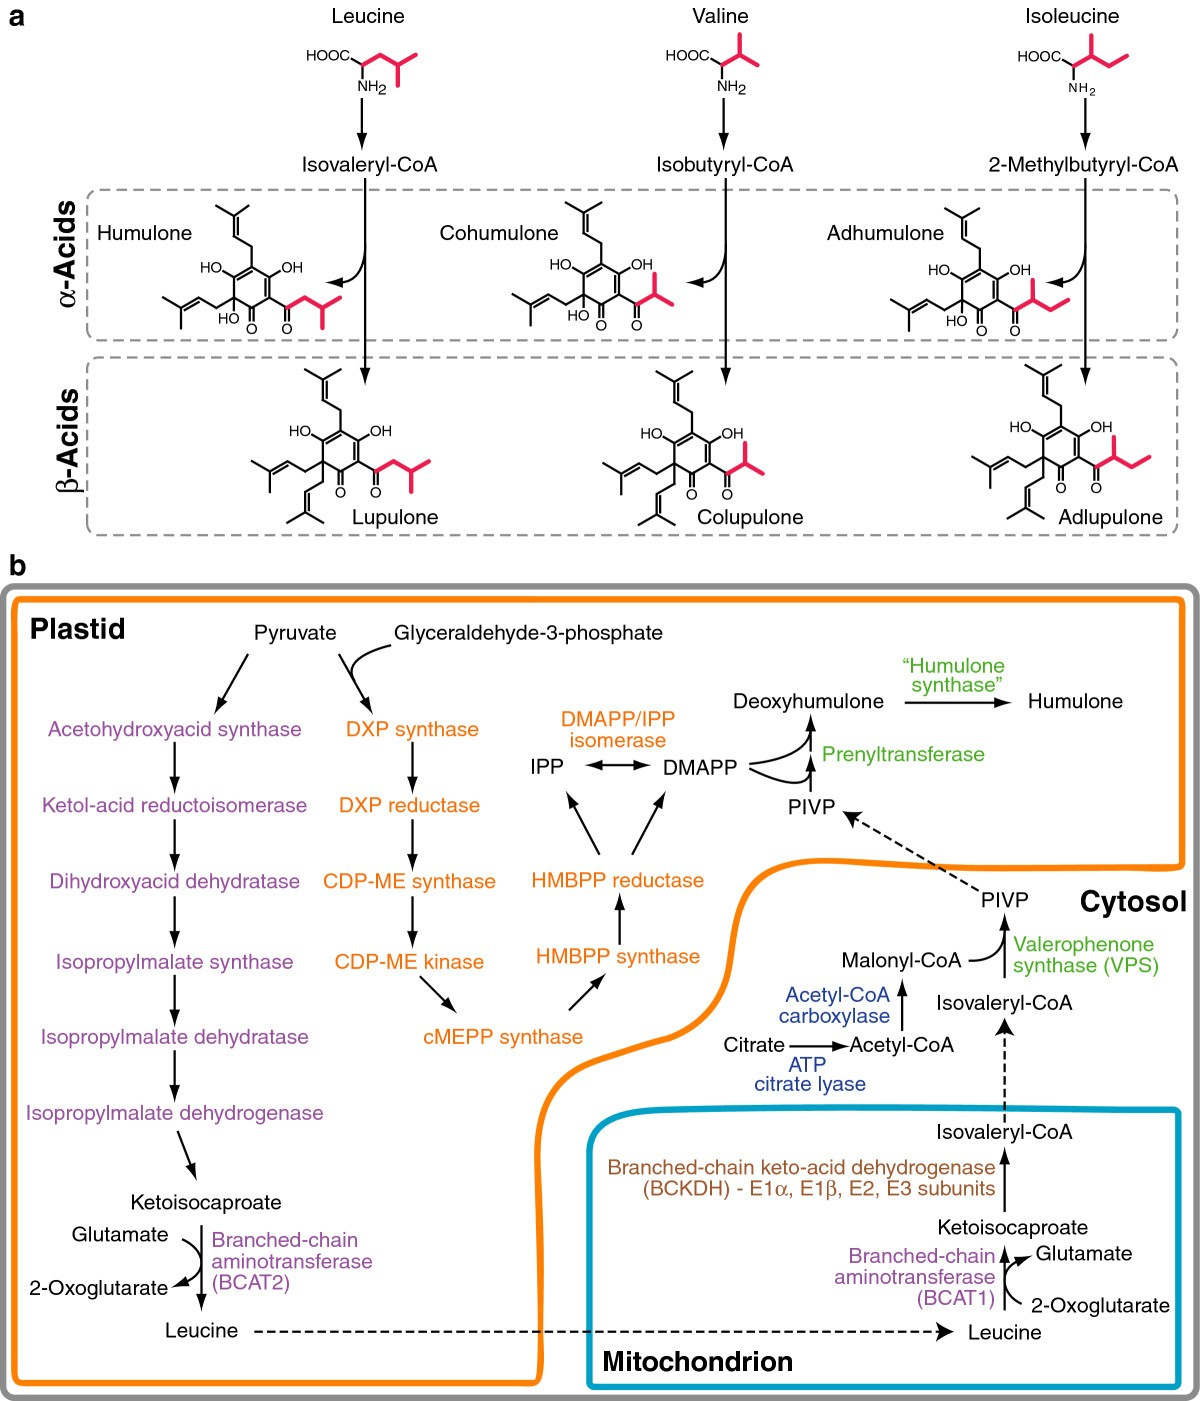 Transcriptome Analysis Of Bitter Acid Biosynthesis And Precursor Oliver Super 55 Schematic Figure 1